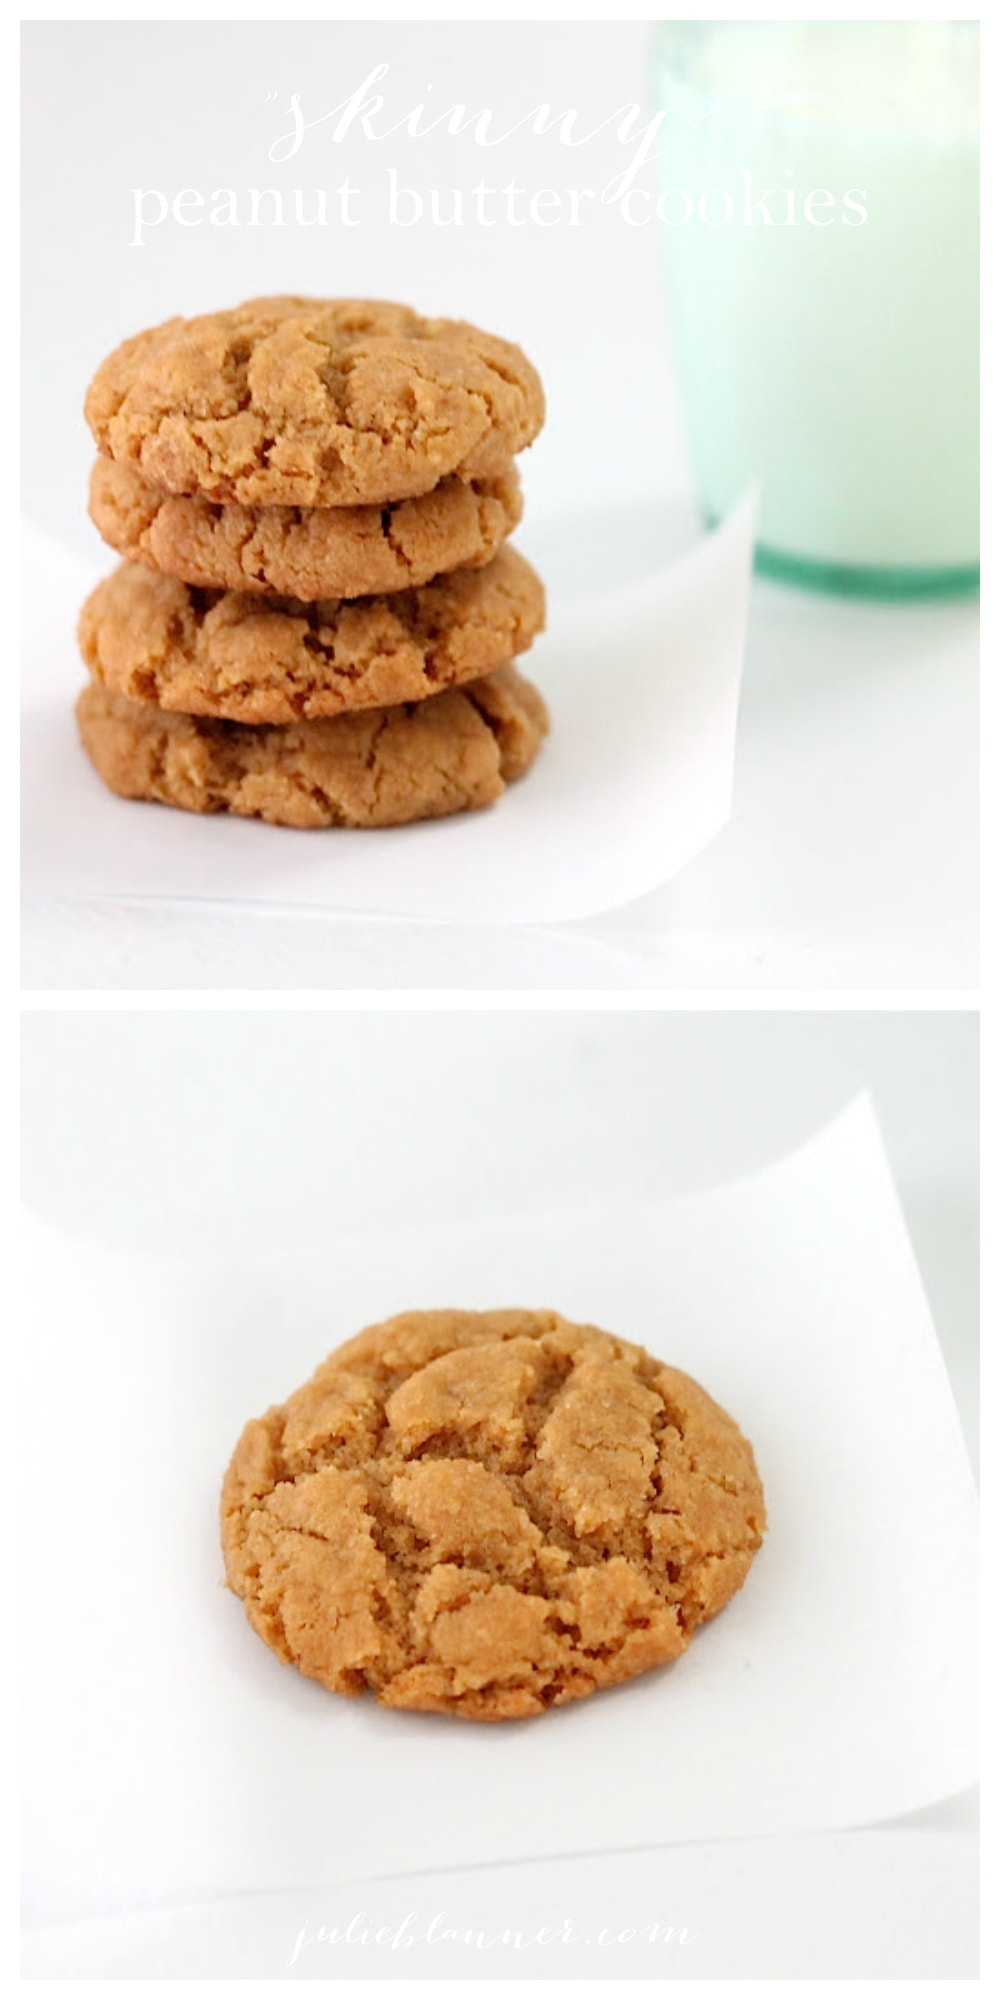 Skinny Flourless Peanut Butter Cookie recipe - a lower calorie, gluten free version that stacks up to the original!